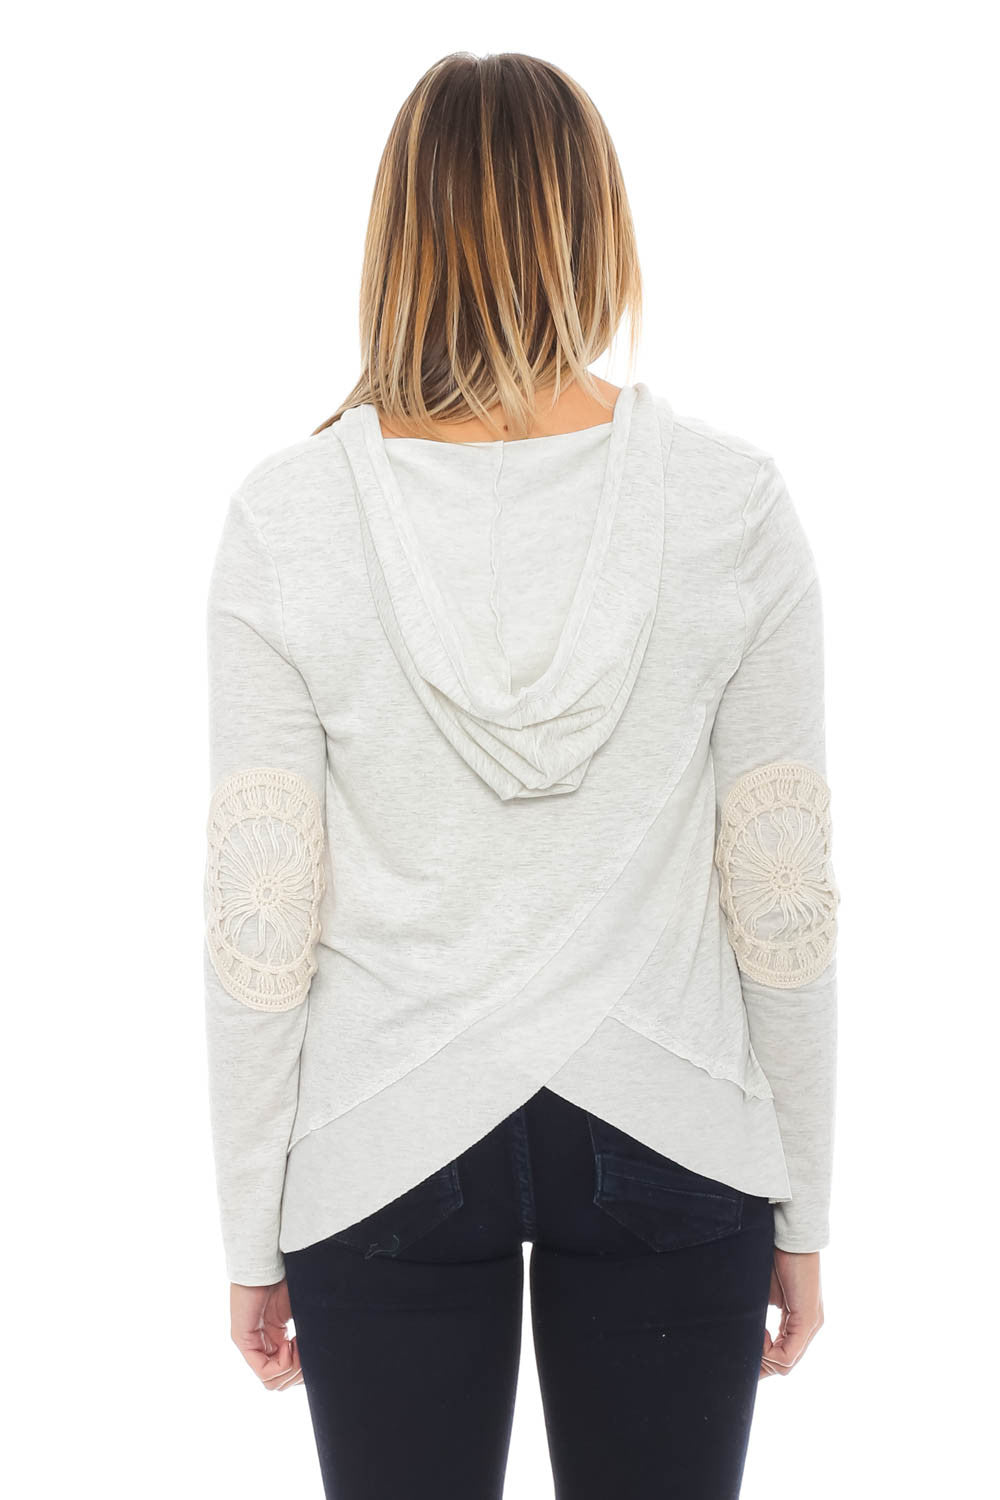 Sweater - Overlap Back Hoodie with Lace Elbow Patches by Paper Crane